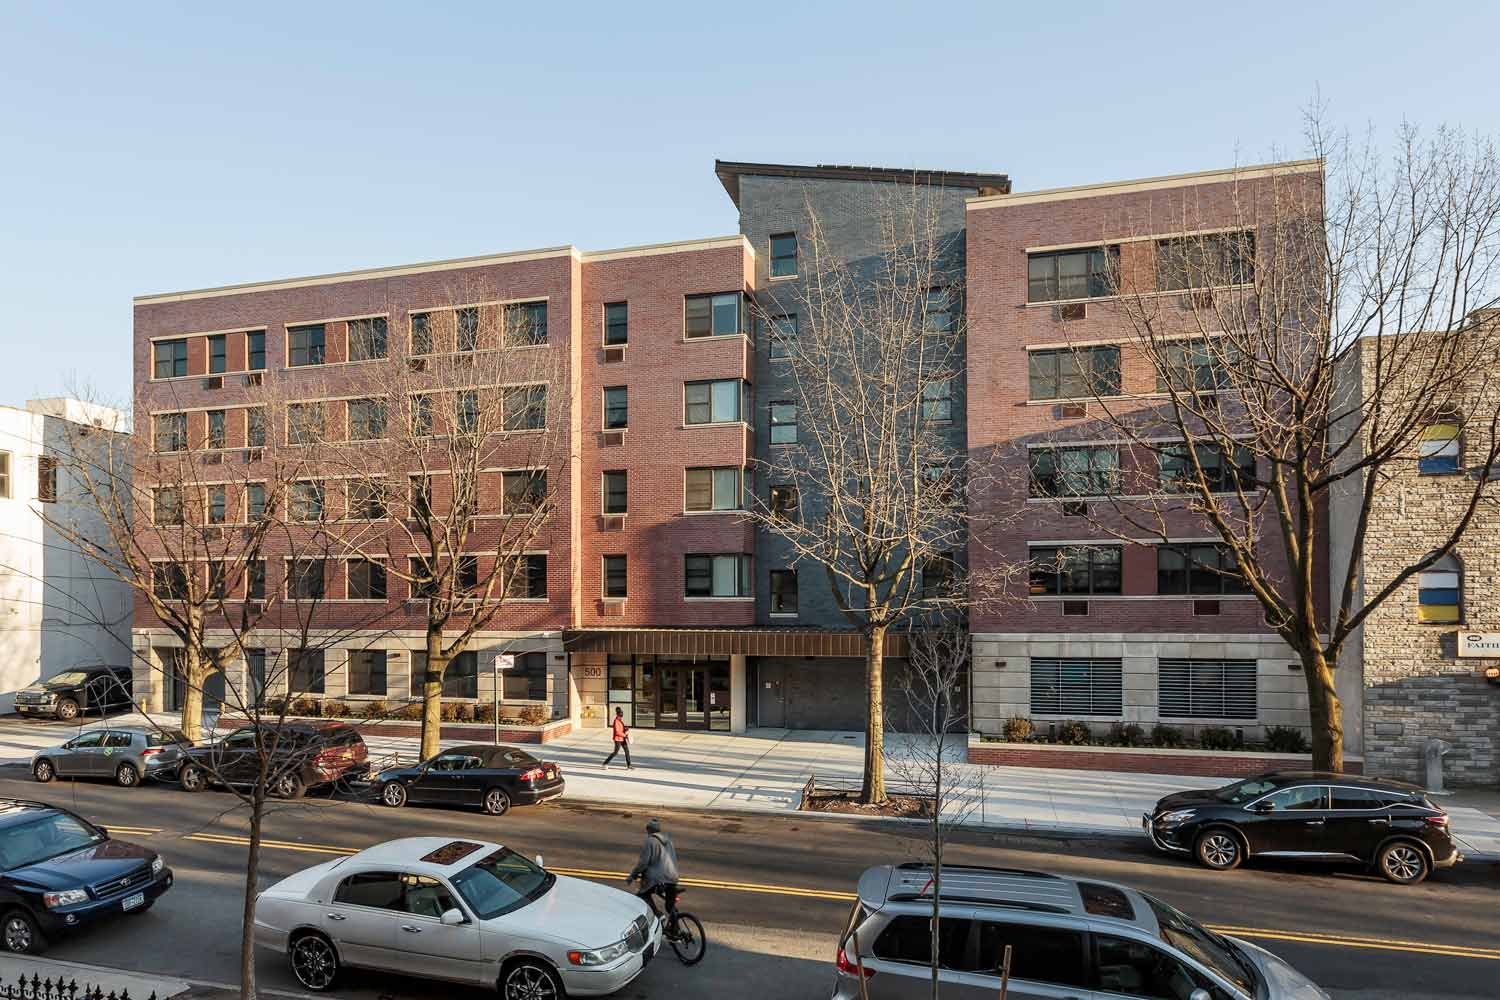 Supportive housing new construction by OCV Architects